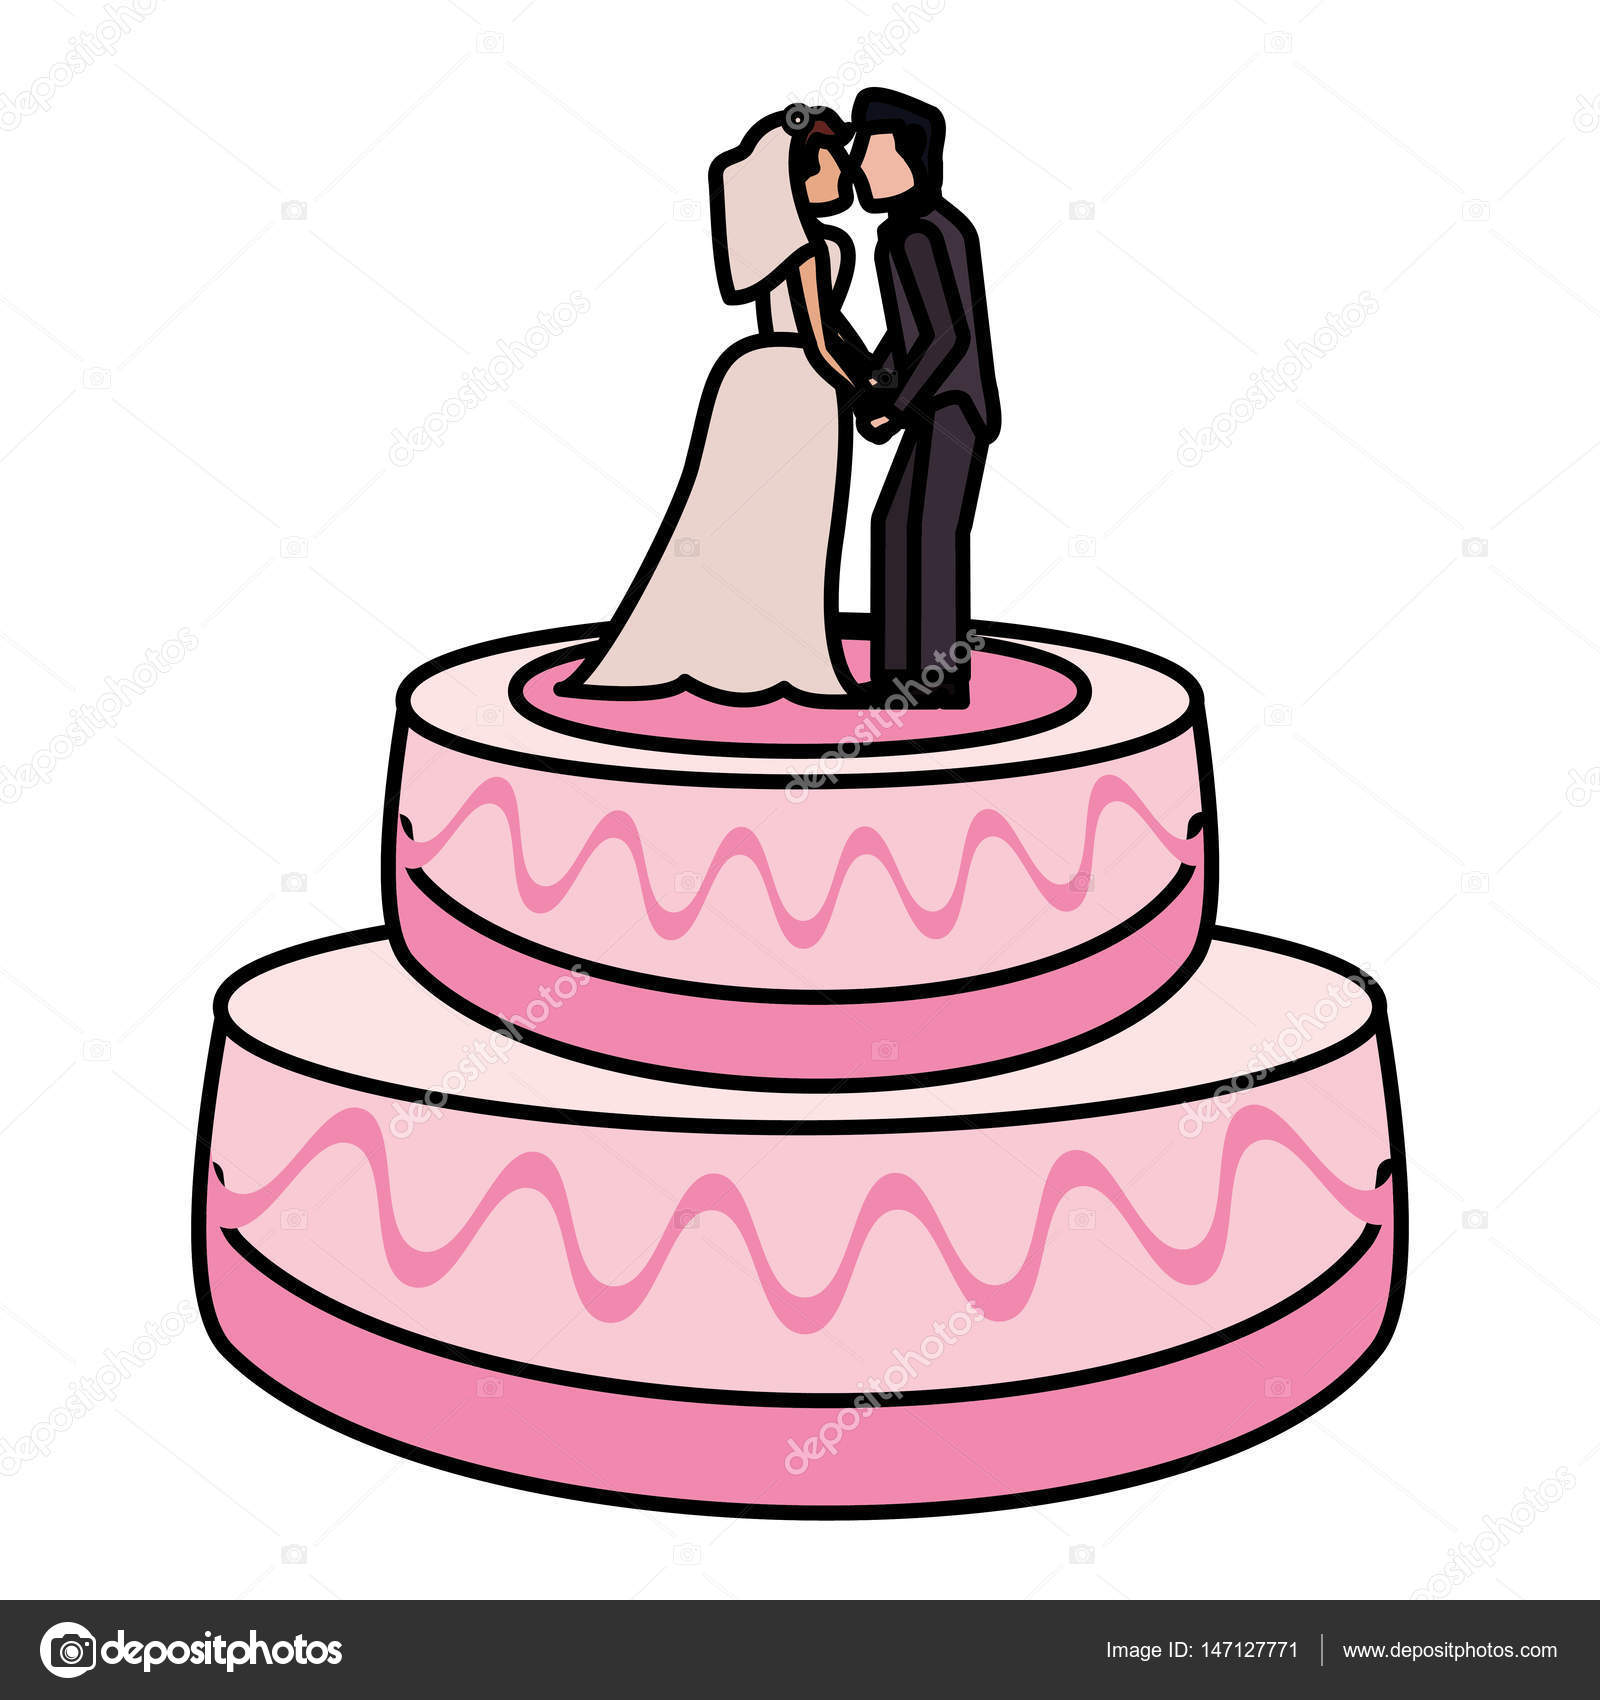 Wedding Cake Couple Dessert Stock Vector C Jemastock 147127771